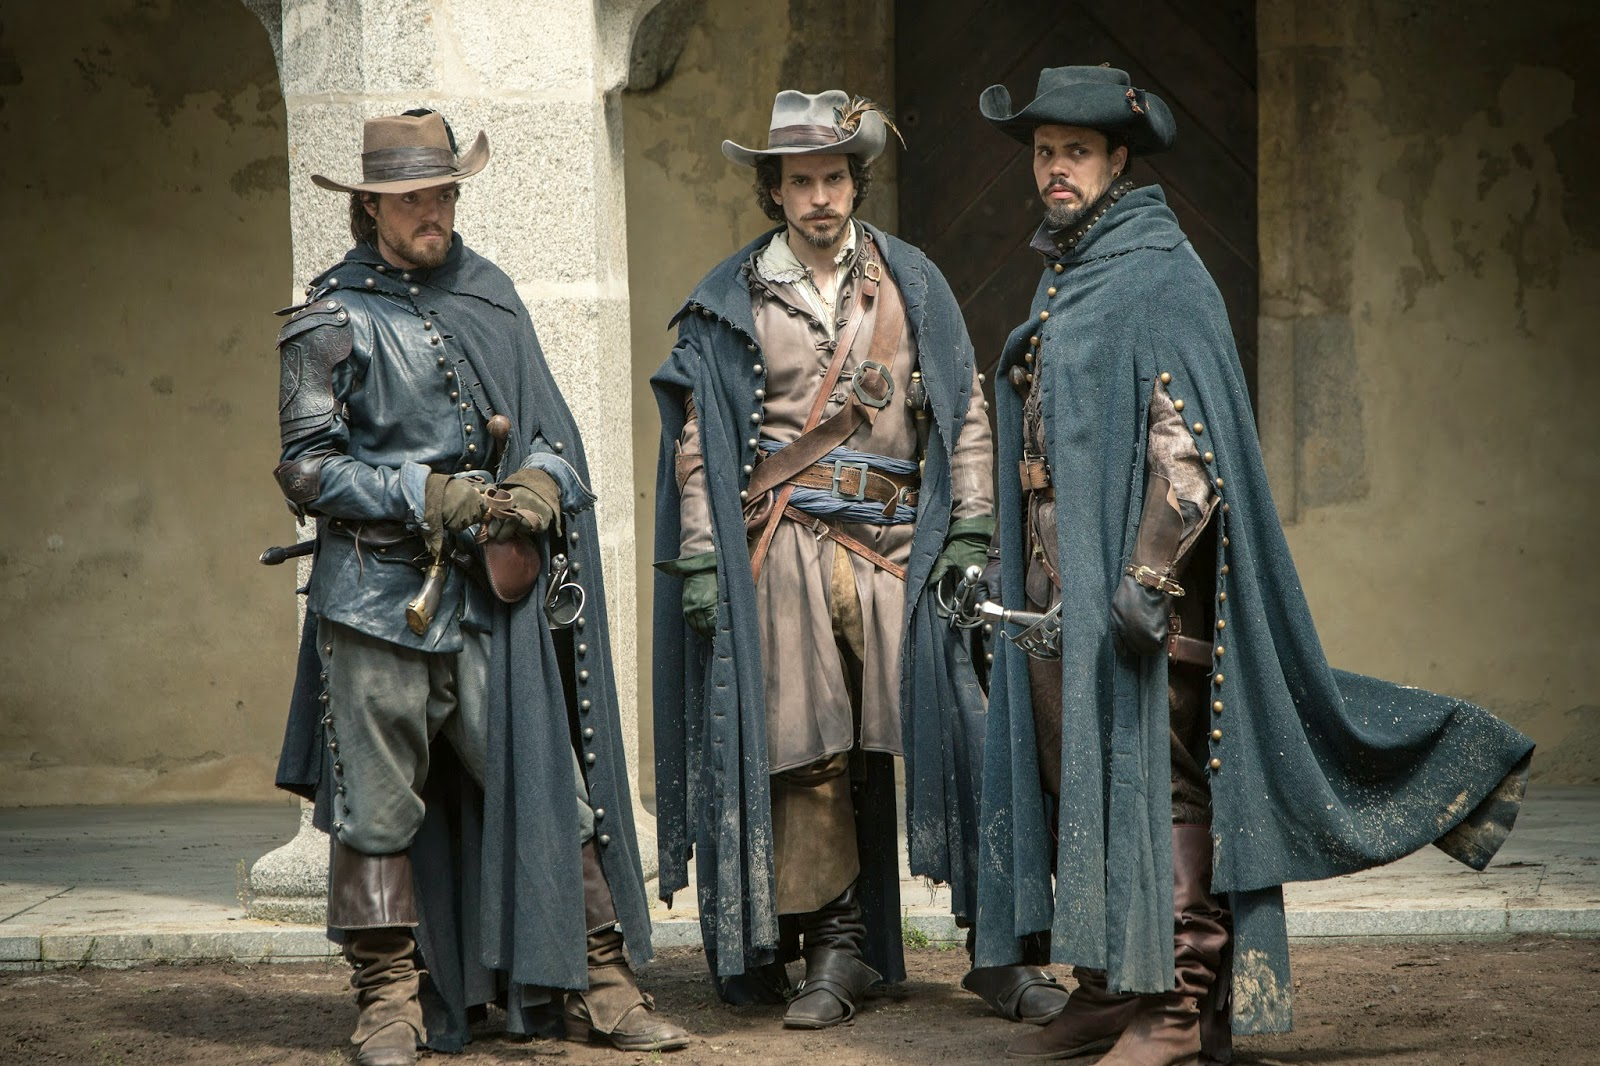 an analysis of the character of dartagnan in the novel the three musketeers Three musketeers twenty years after the shadows a novel a frey mcgray mystery man in the iron mask beyond any mask what kind of godly character are.